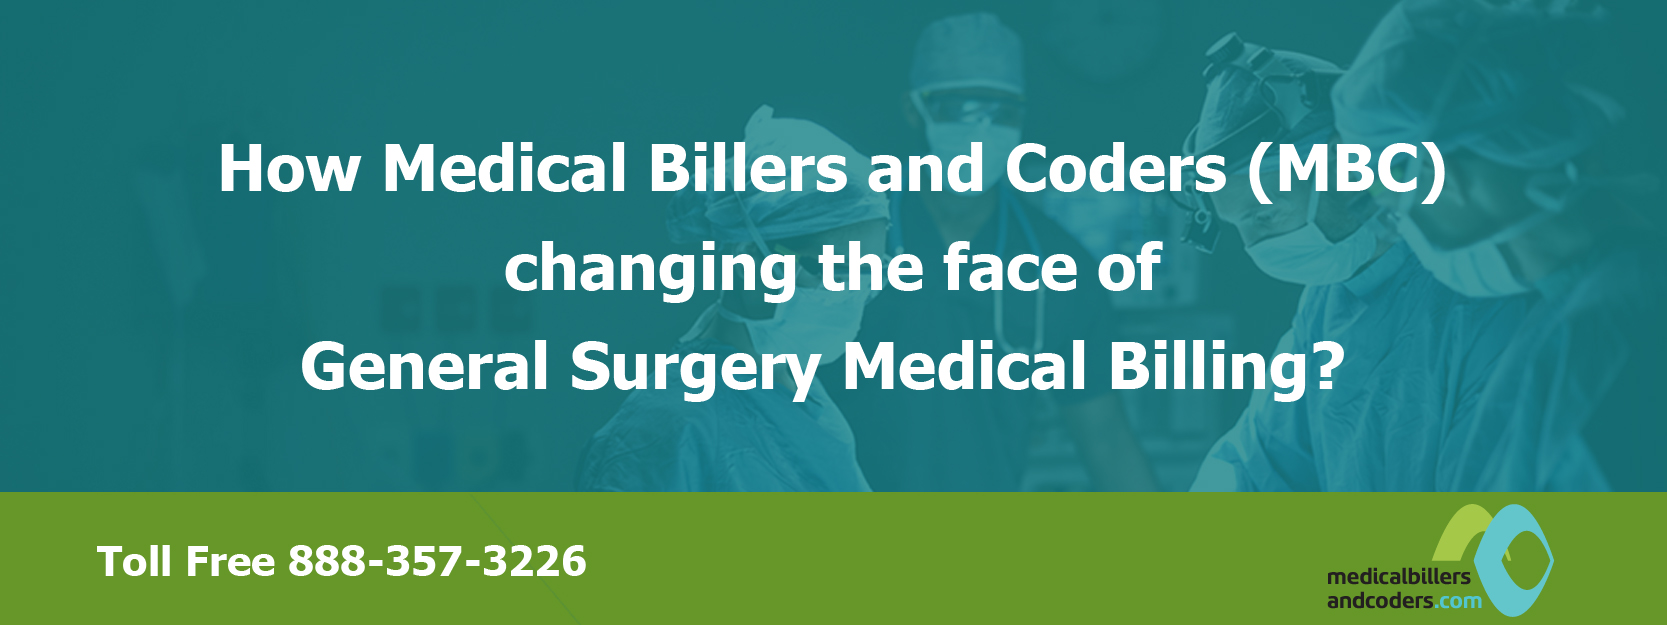 how-medical-billers-and-Coders-mbc-changing-the-face-of-general-surgery-medical-billing